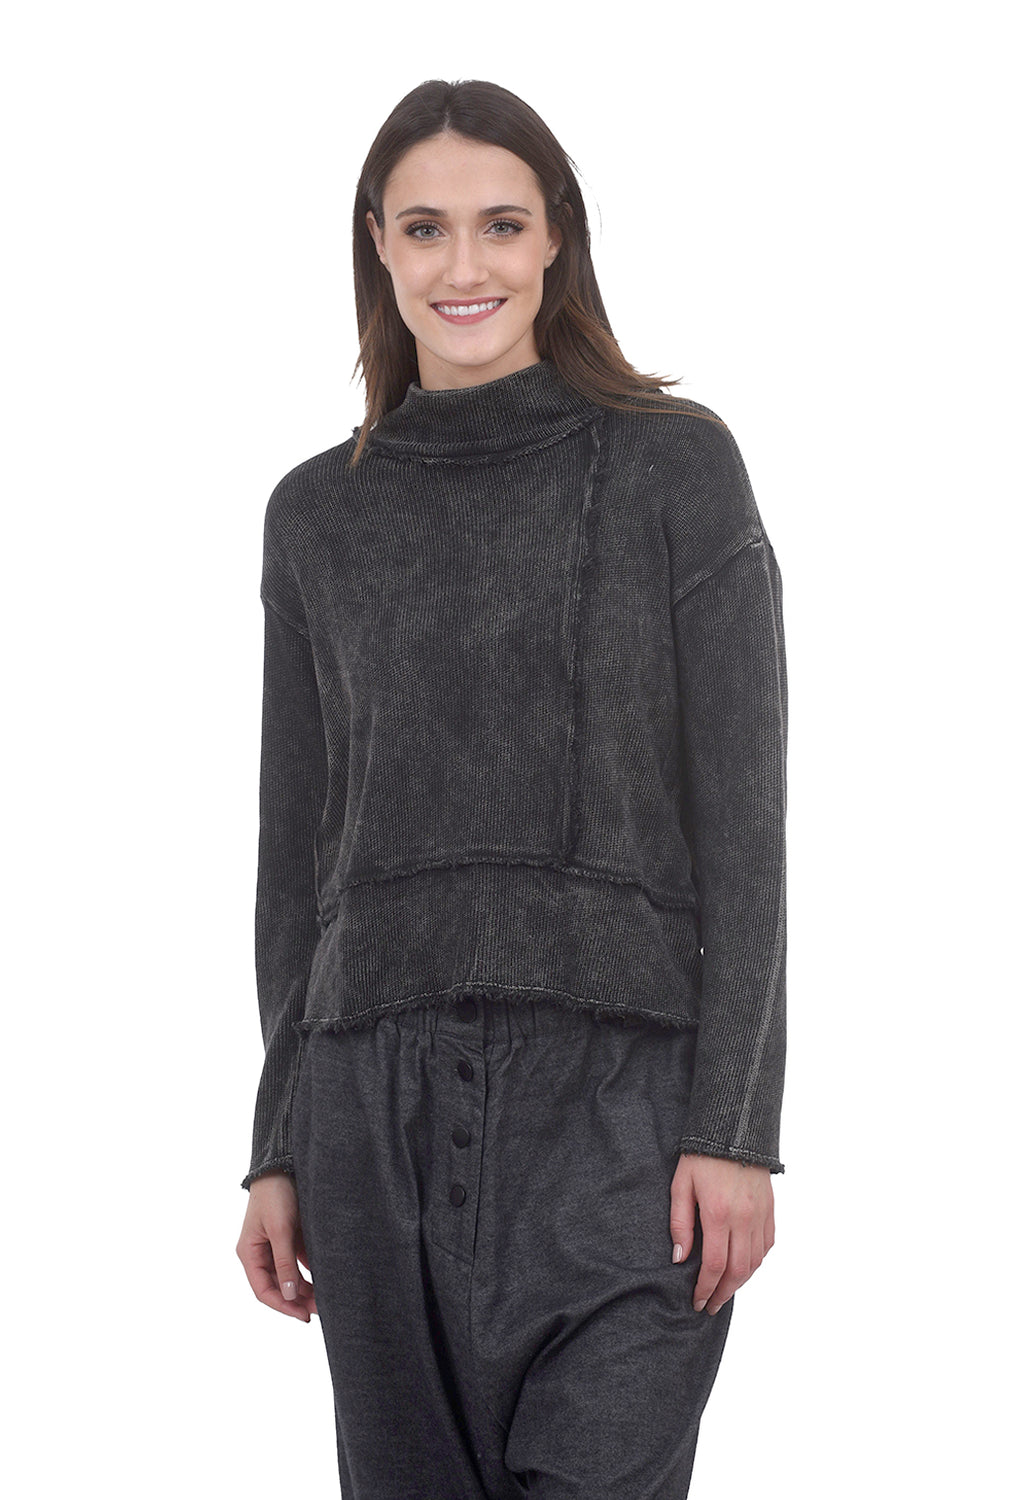 Beau Jours Evelyn Distressed Sweater, Black